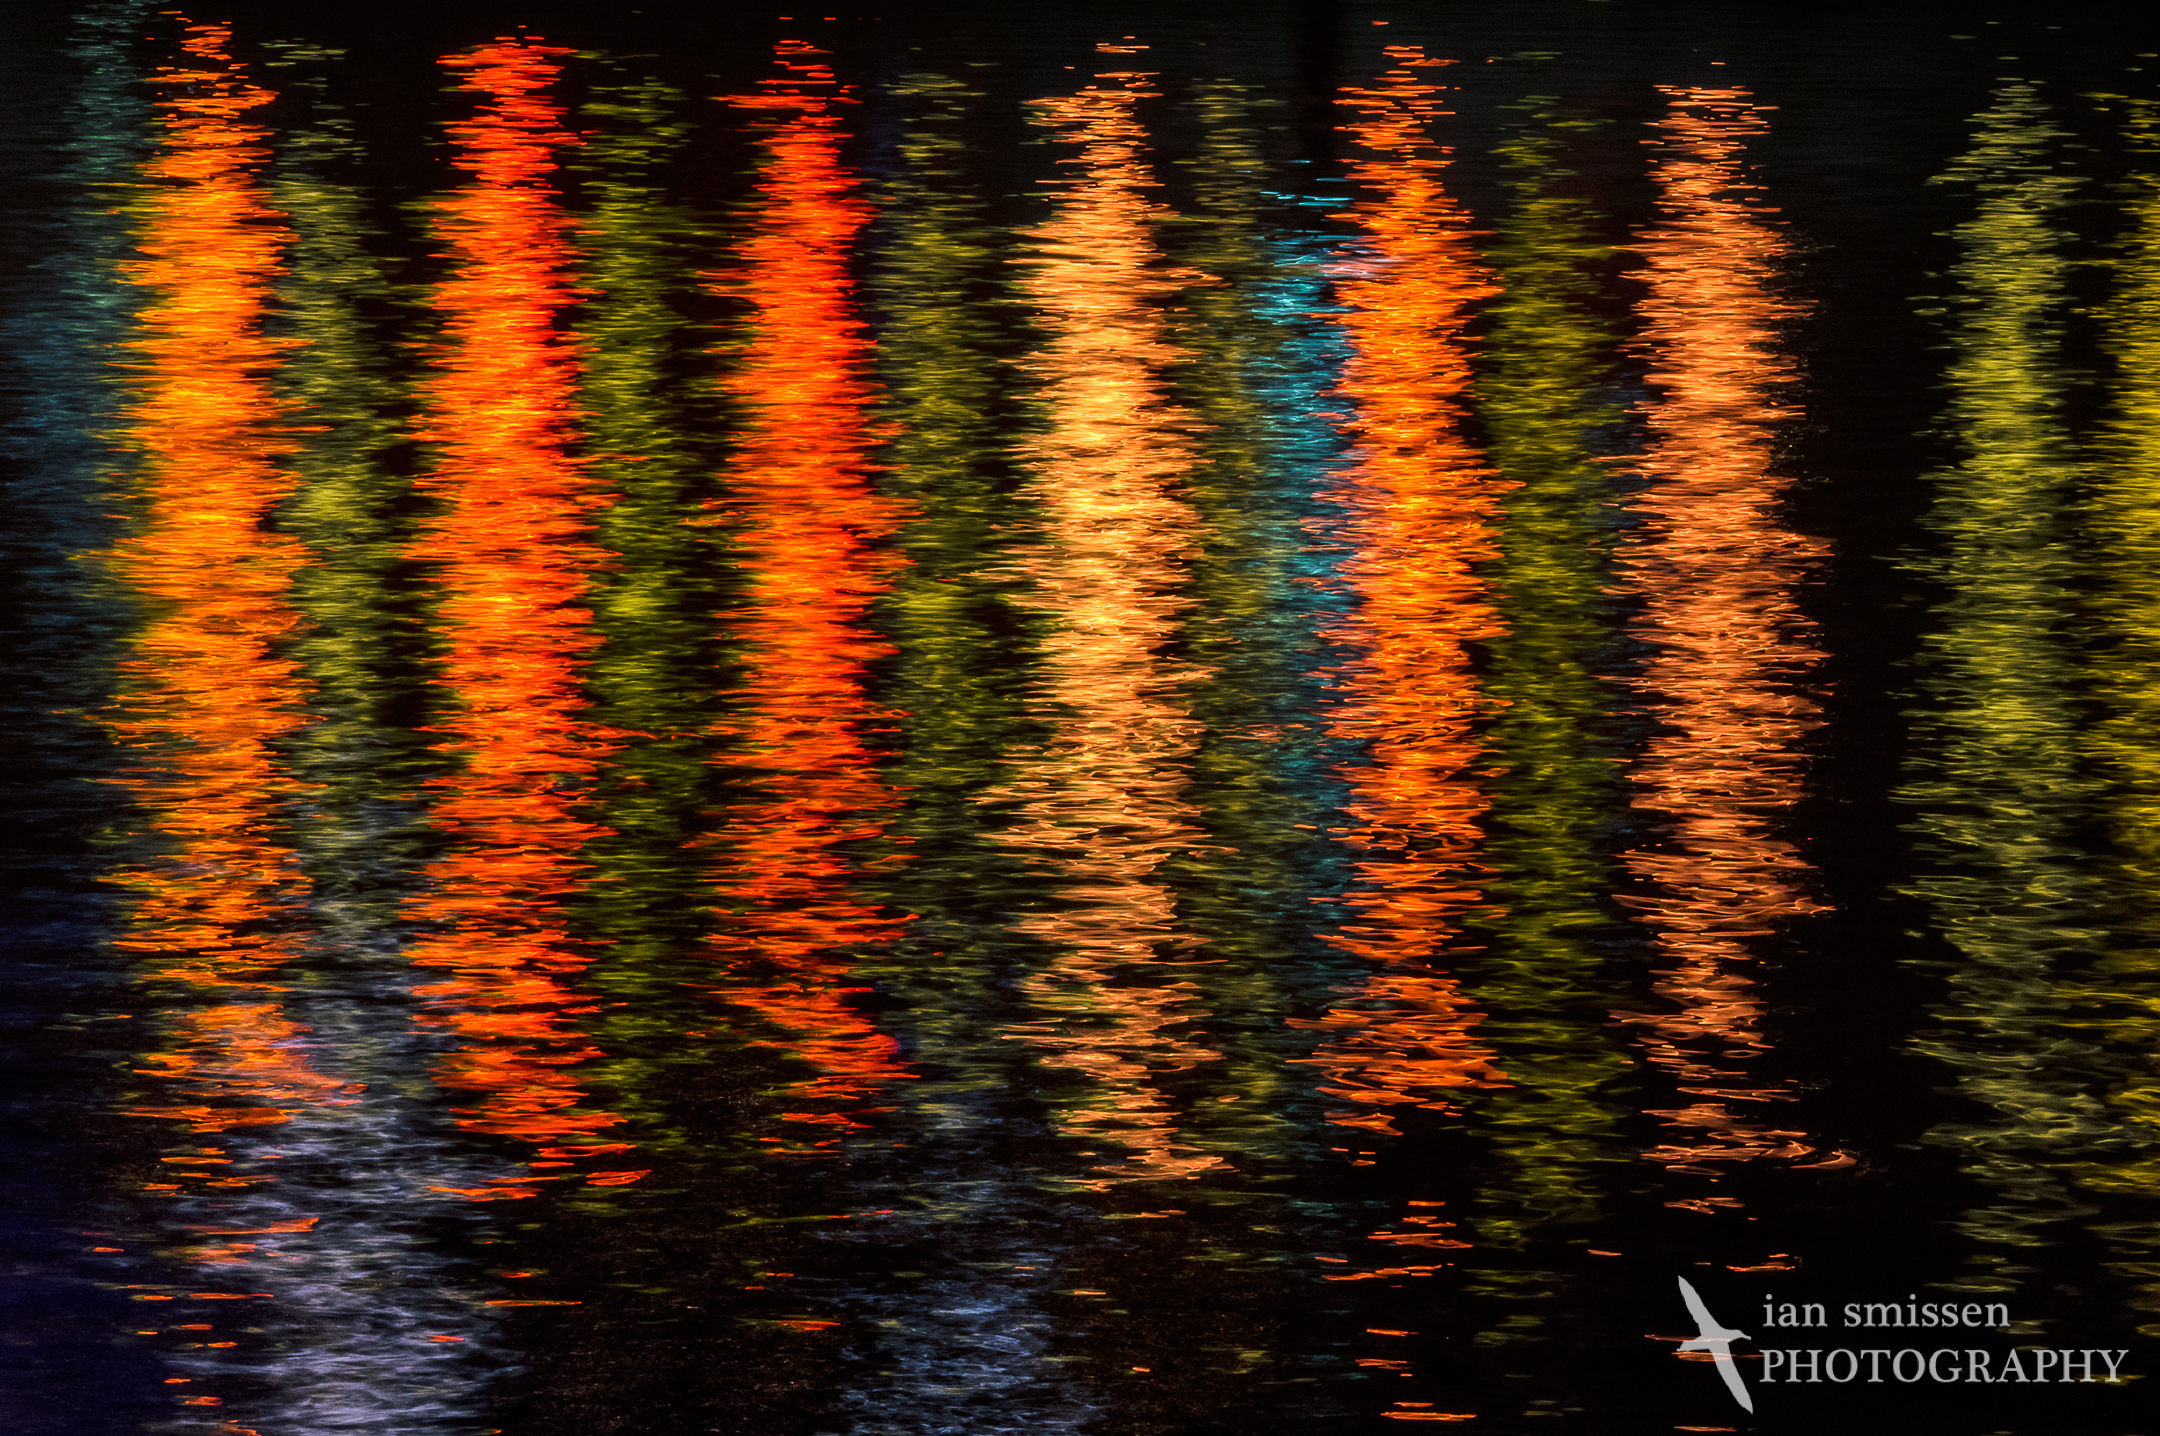 Yarra River reflections